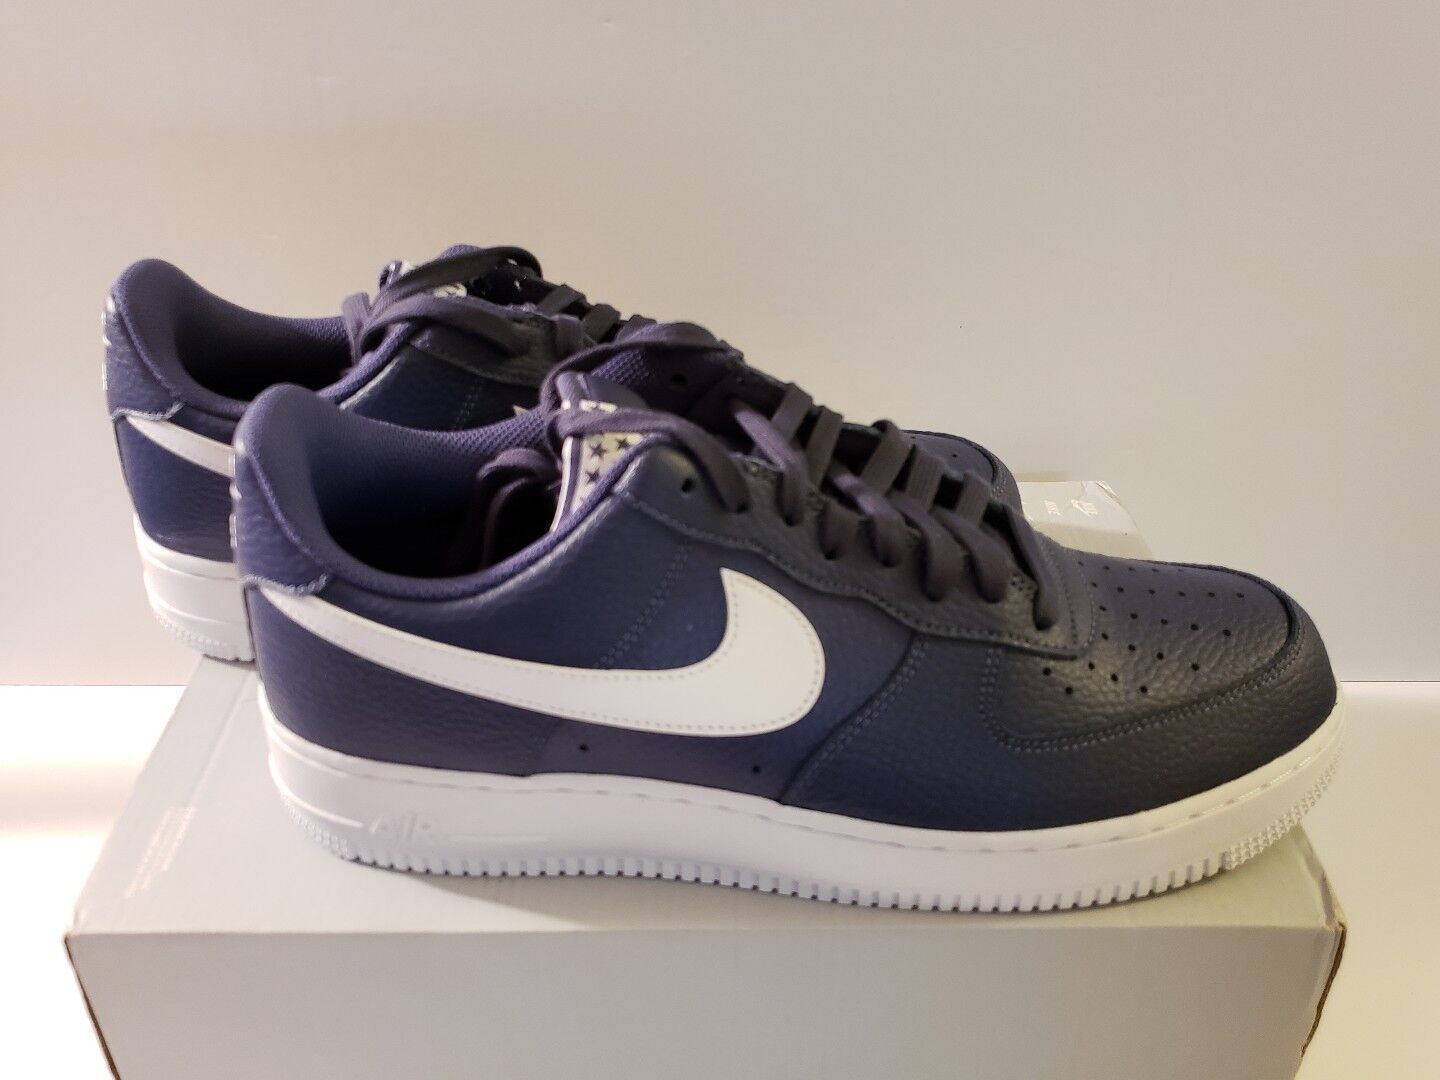 Special limited time NEW MEN'S NIKE AIR FORCE 1 '07 Comfortable